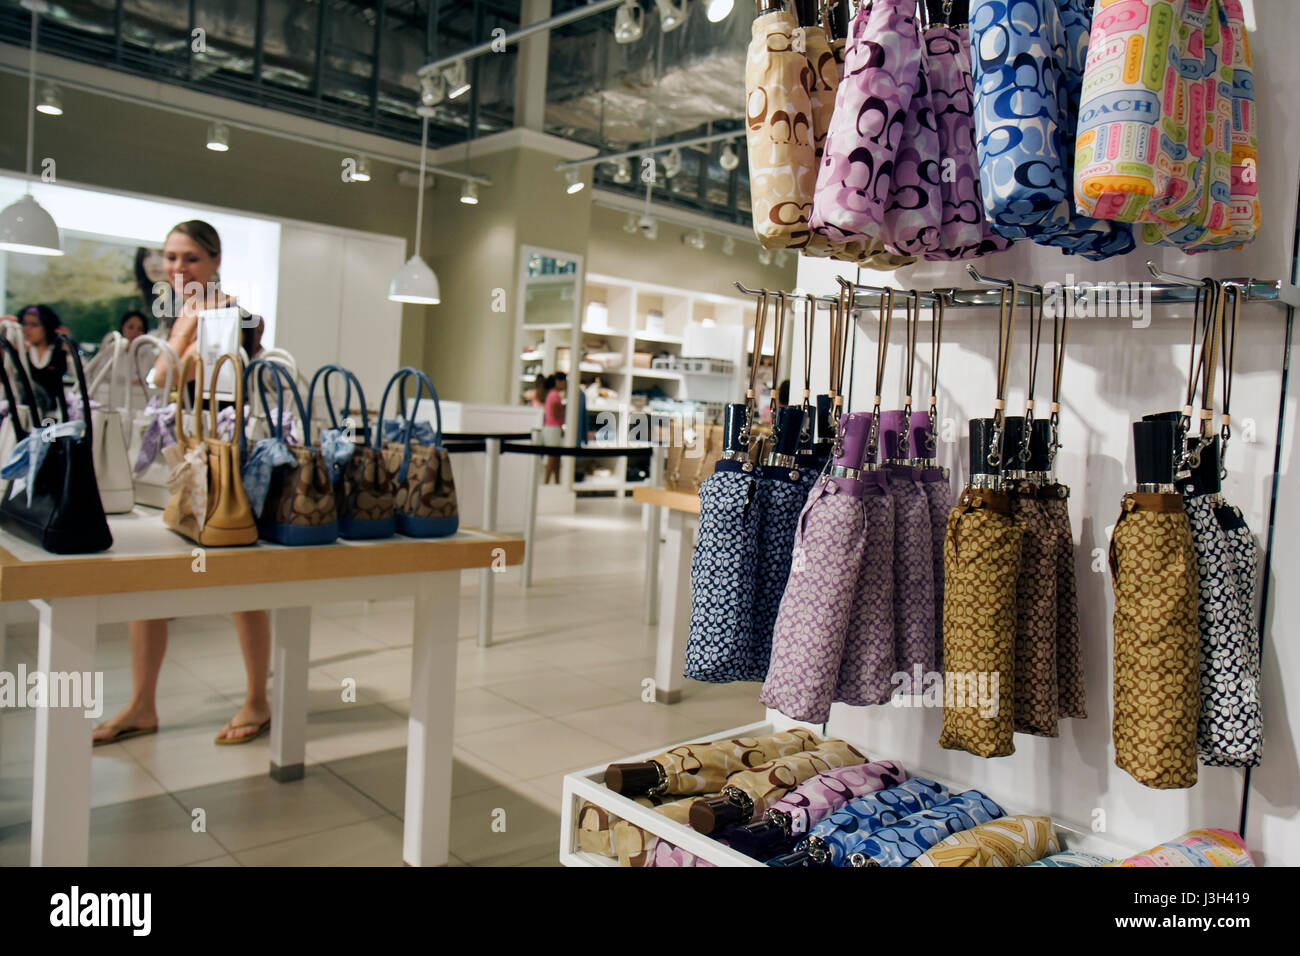 Beautiful Miami Florida Dolphin Mall Coach Factory Outlet Woman Shopper Shopping  Designer Handbags Leather Goods Brand Marketing Part 6